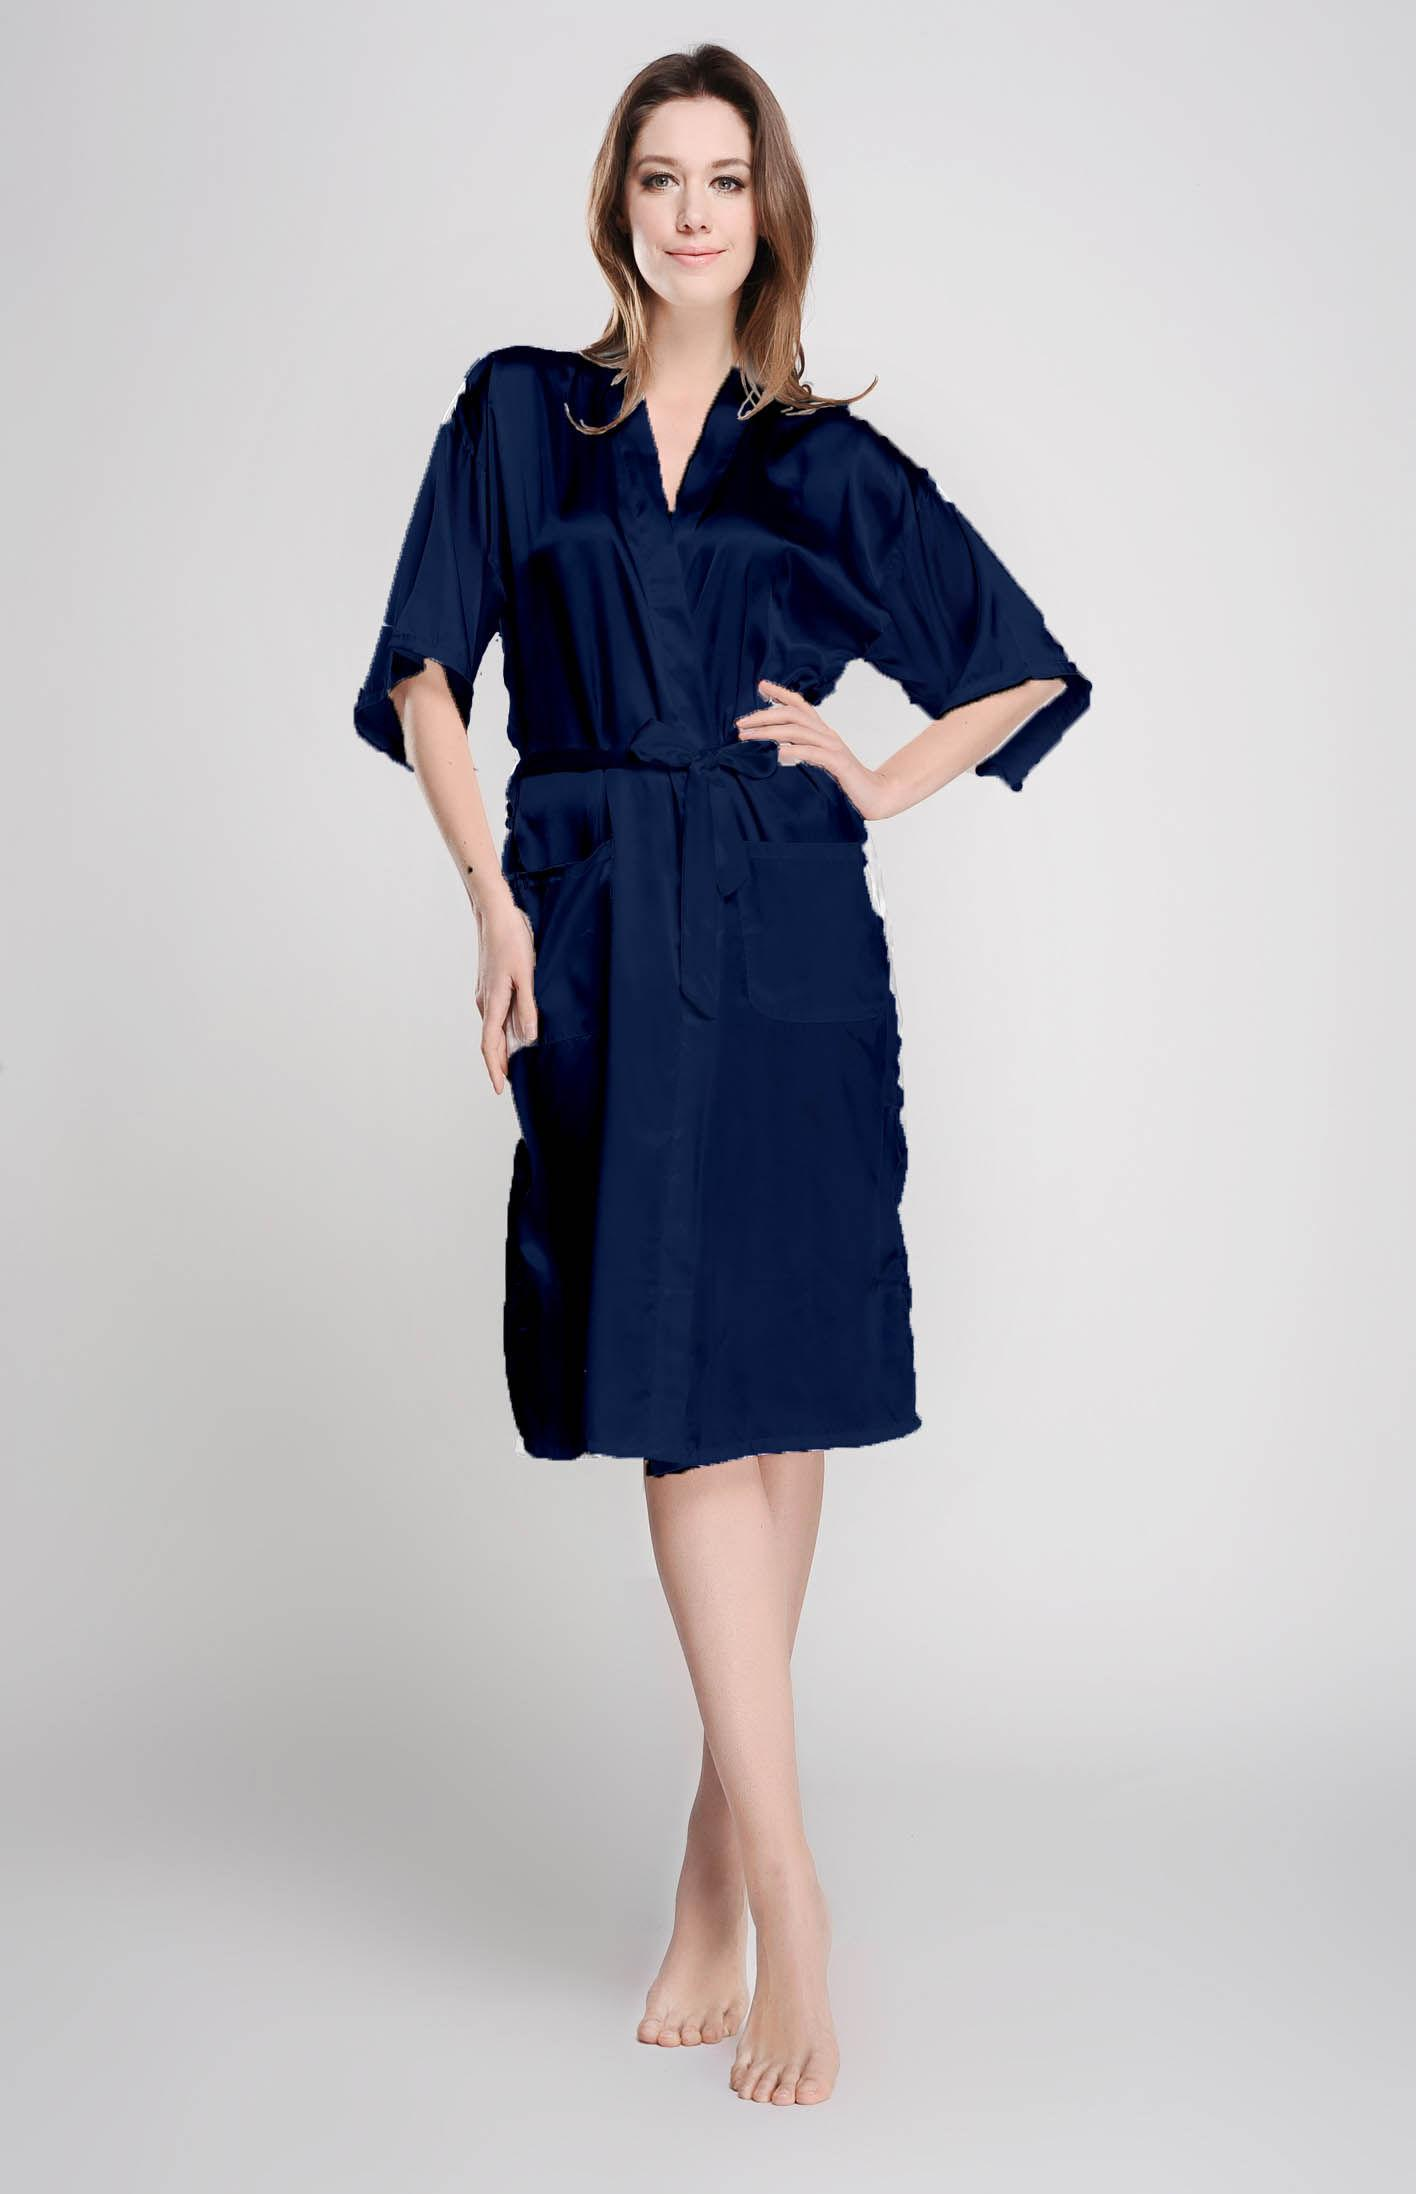 2019 Navy Kimono Robe Inexpensive Bridesmaid Gift Monogrammed Bridesmaid Robe  Silk Robe For Women Satin Robe Bridal Party Wedding Dress RC1 From  Jennygreen 460afd835